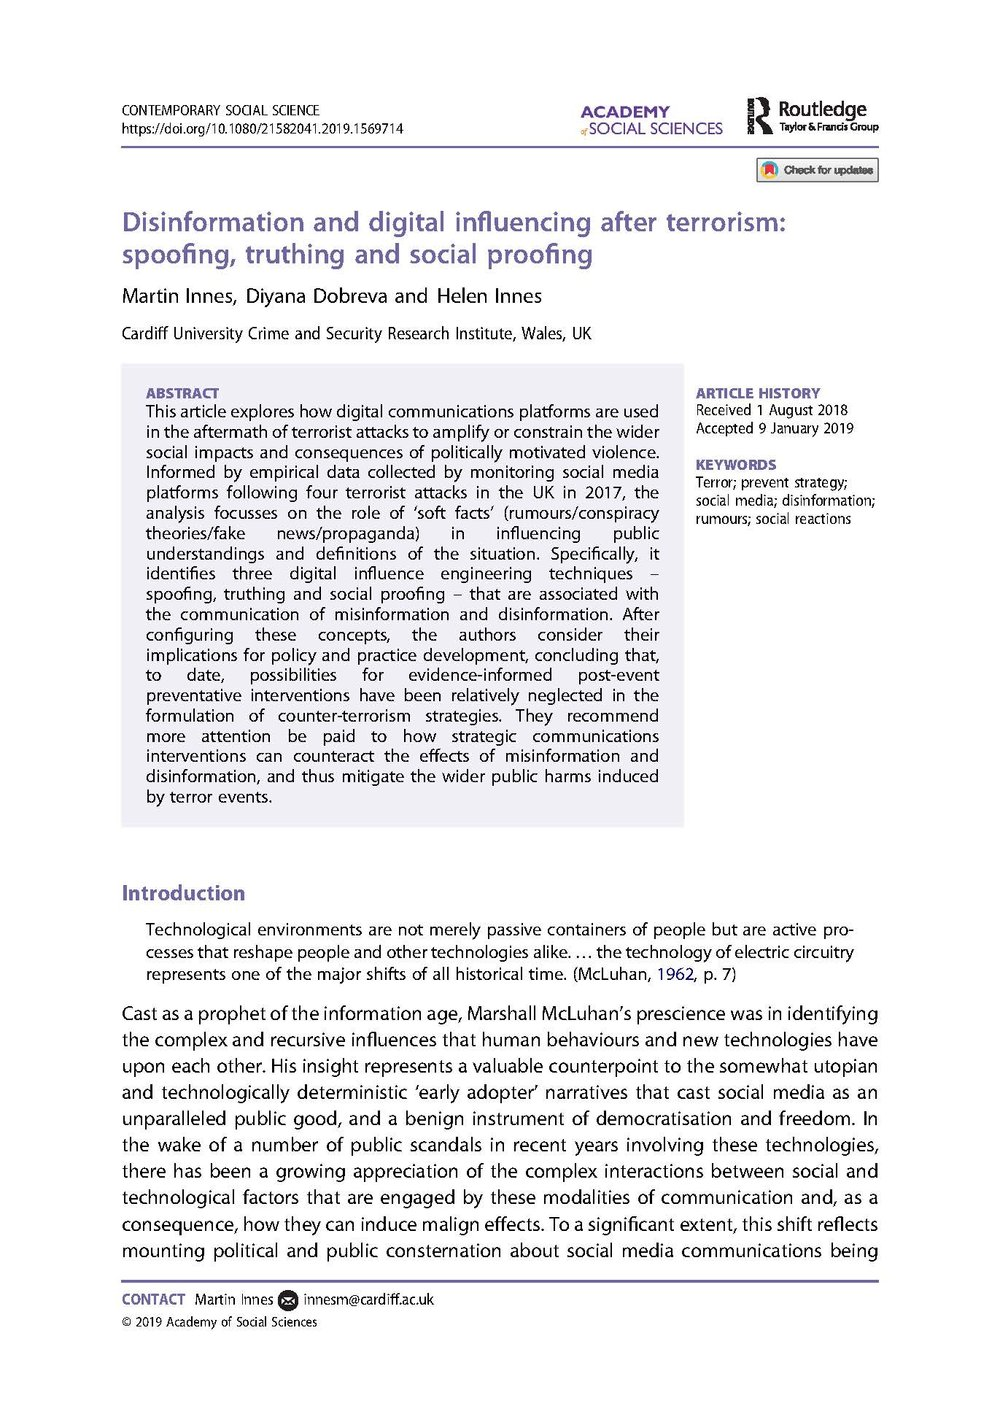 Disinformation and Digital Influencing After Terrorism: Spoofing, Truthing and Social Proofing